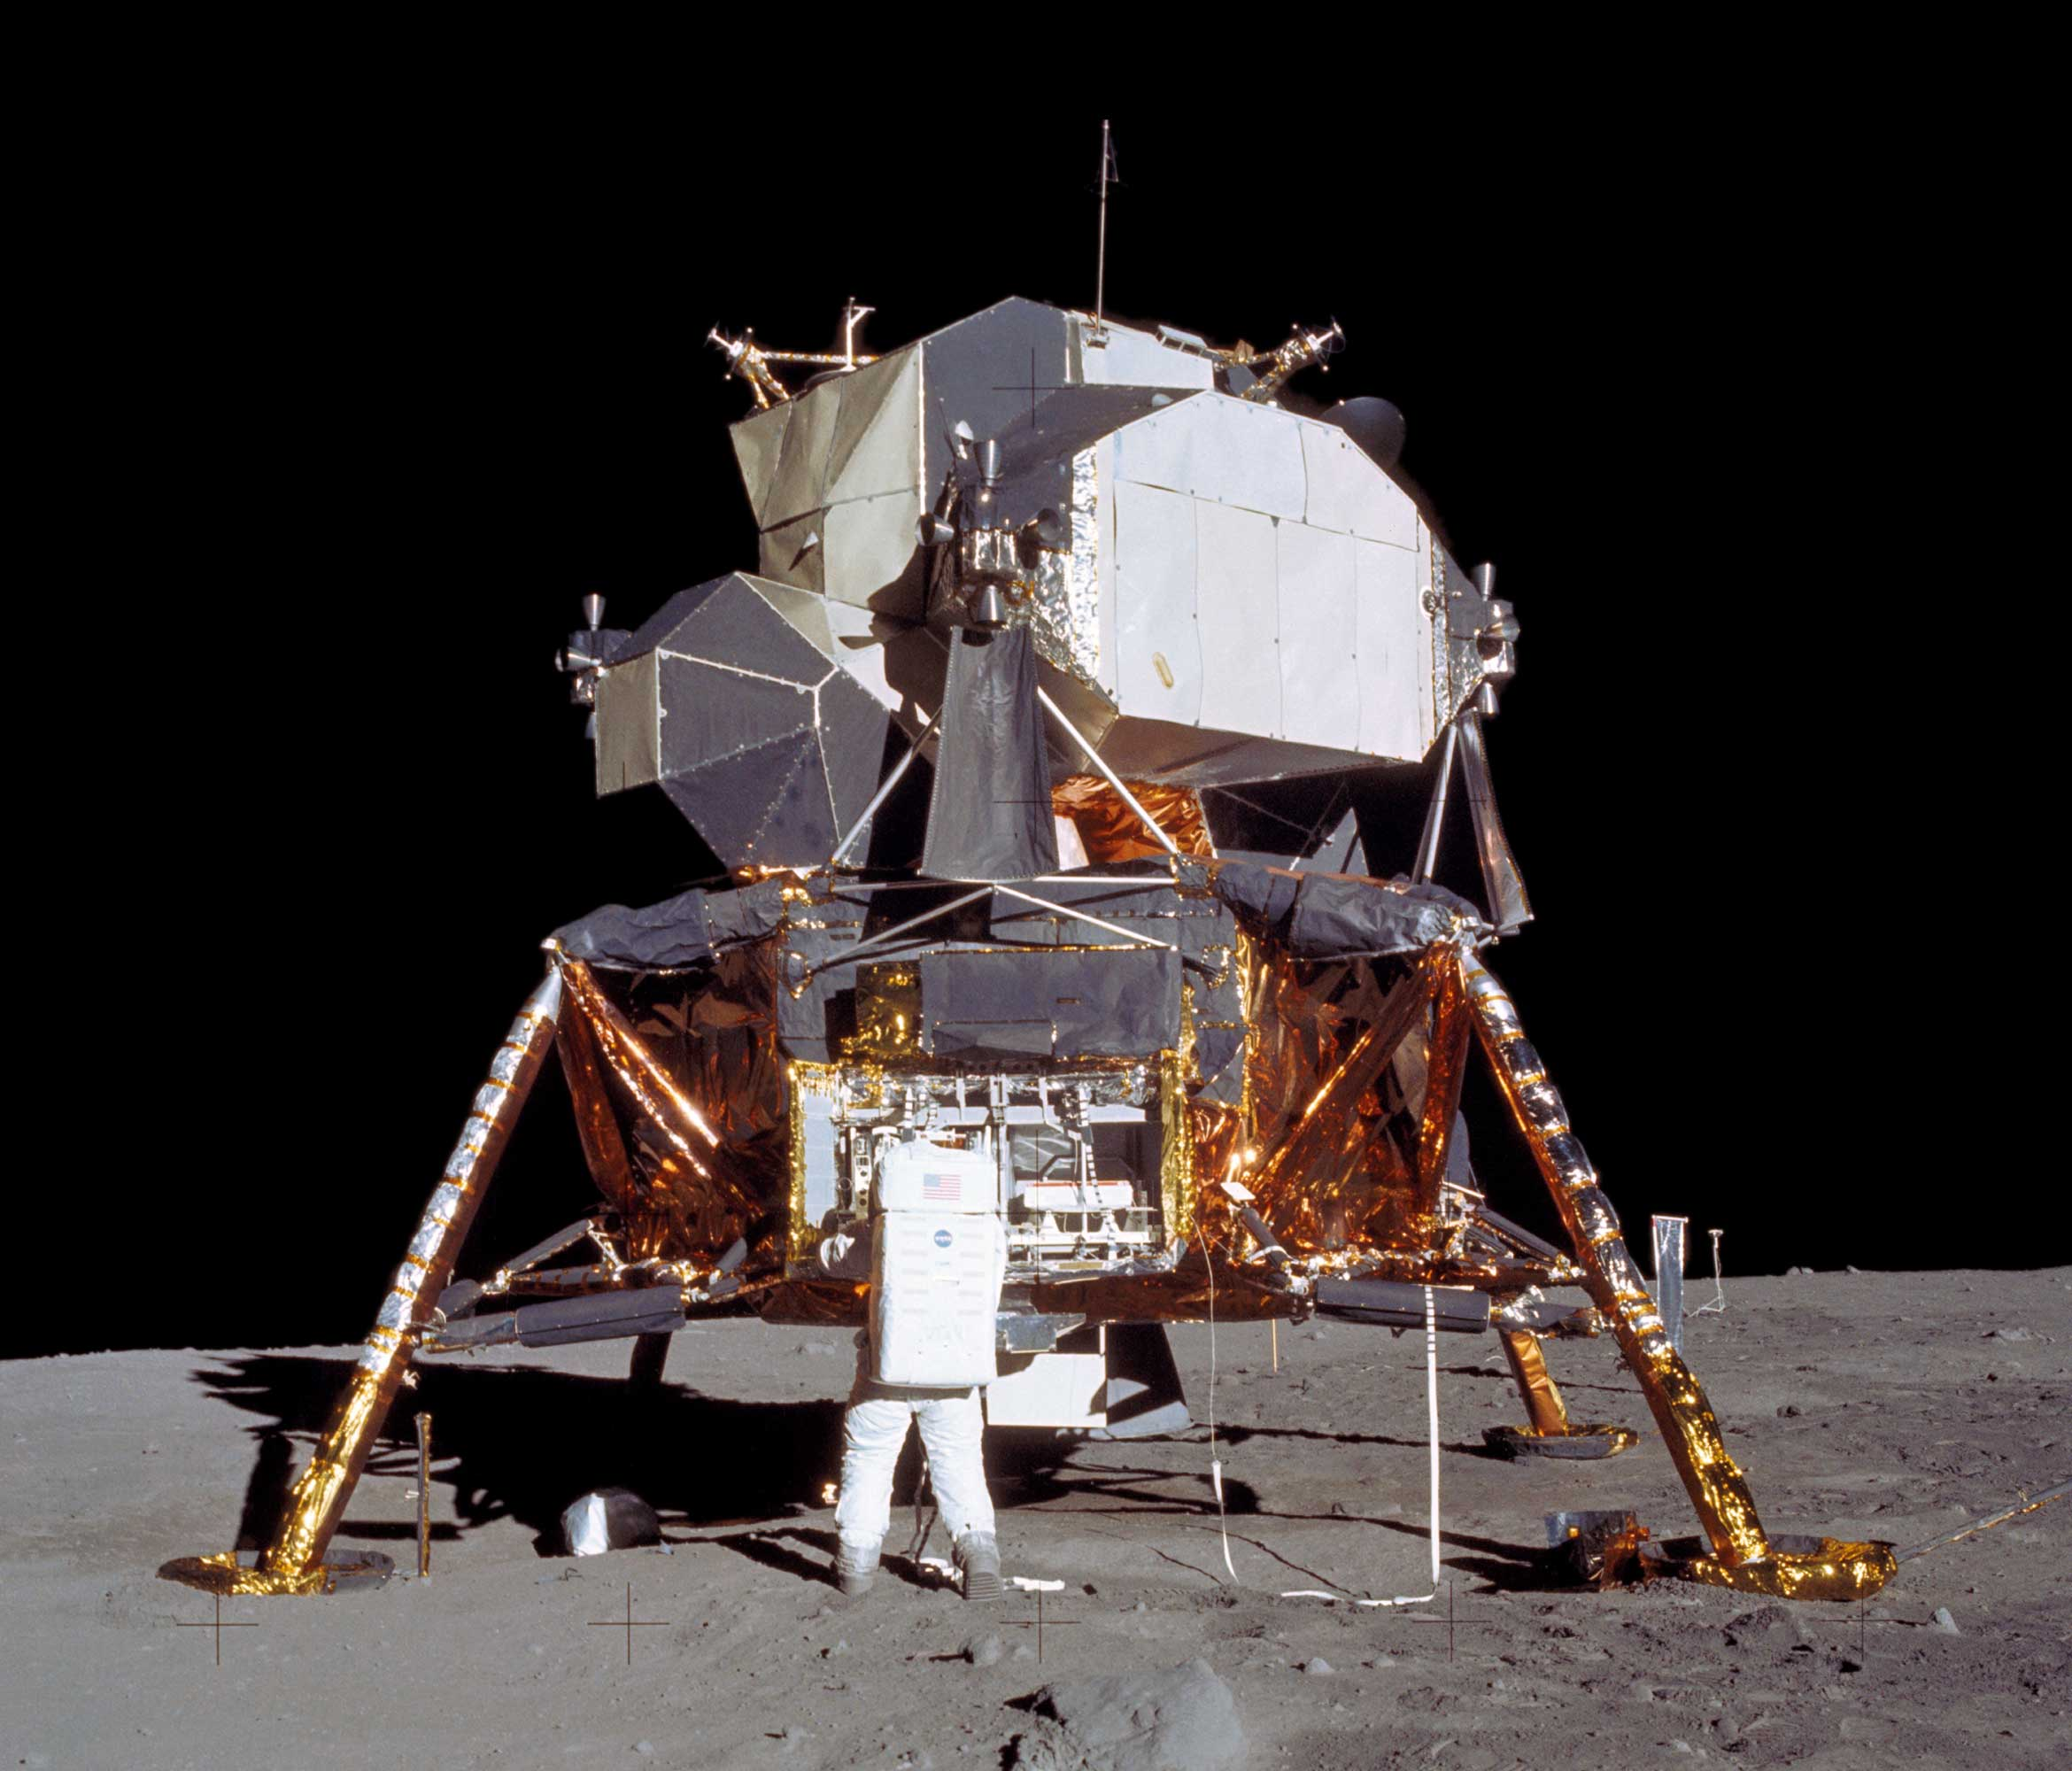 Apollo 11 Lunar Module as it rested on lunar surface